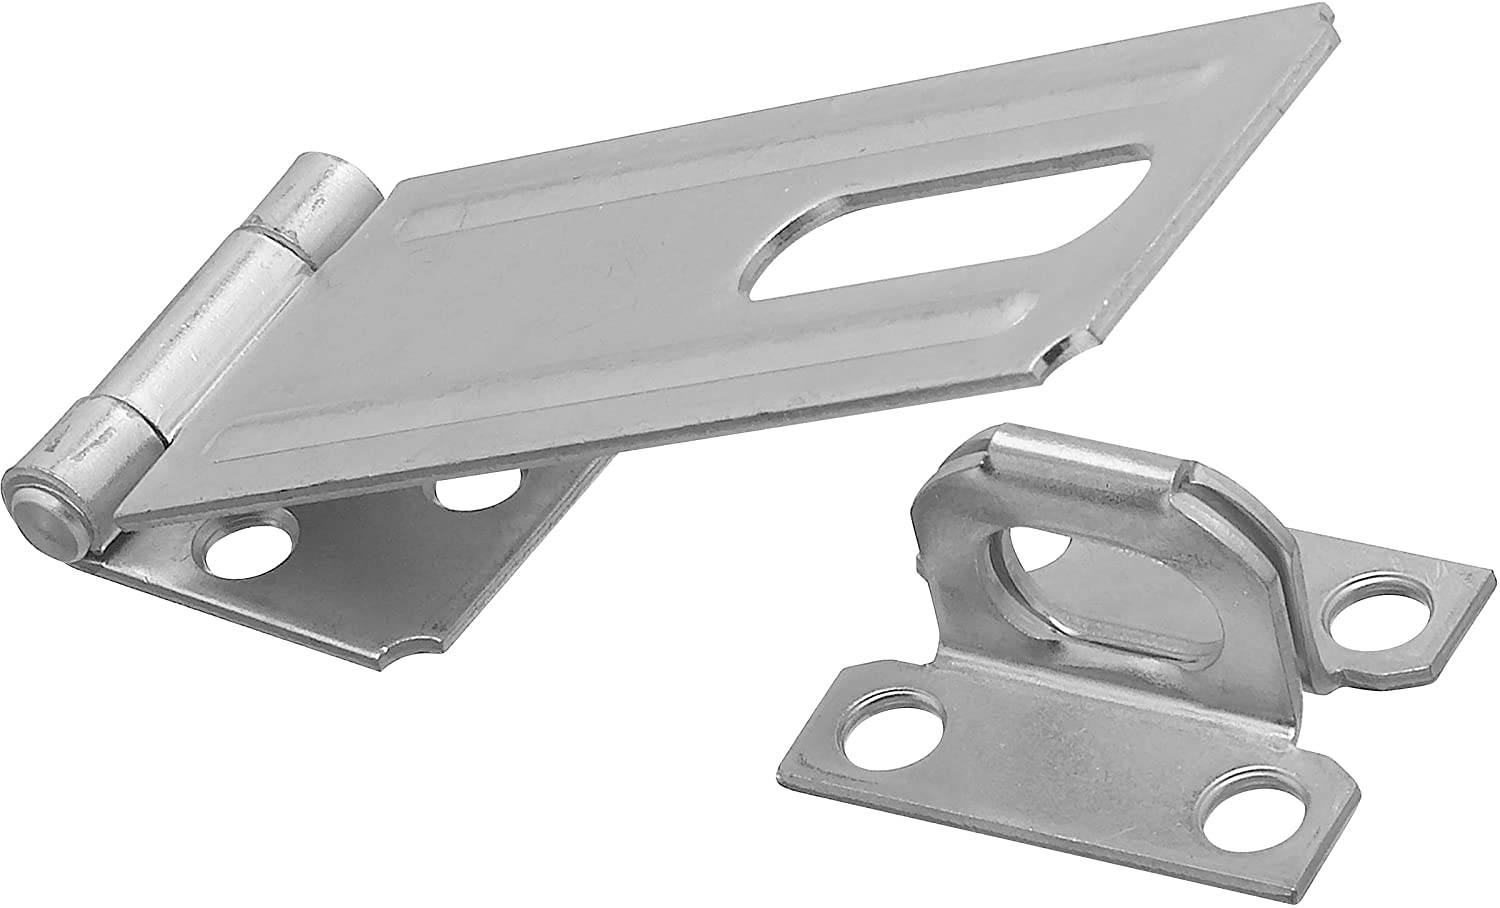 Stanley Hardware S755 070 915 Safety Hasp in Zinc plated